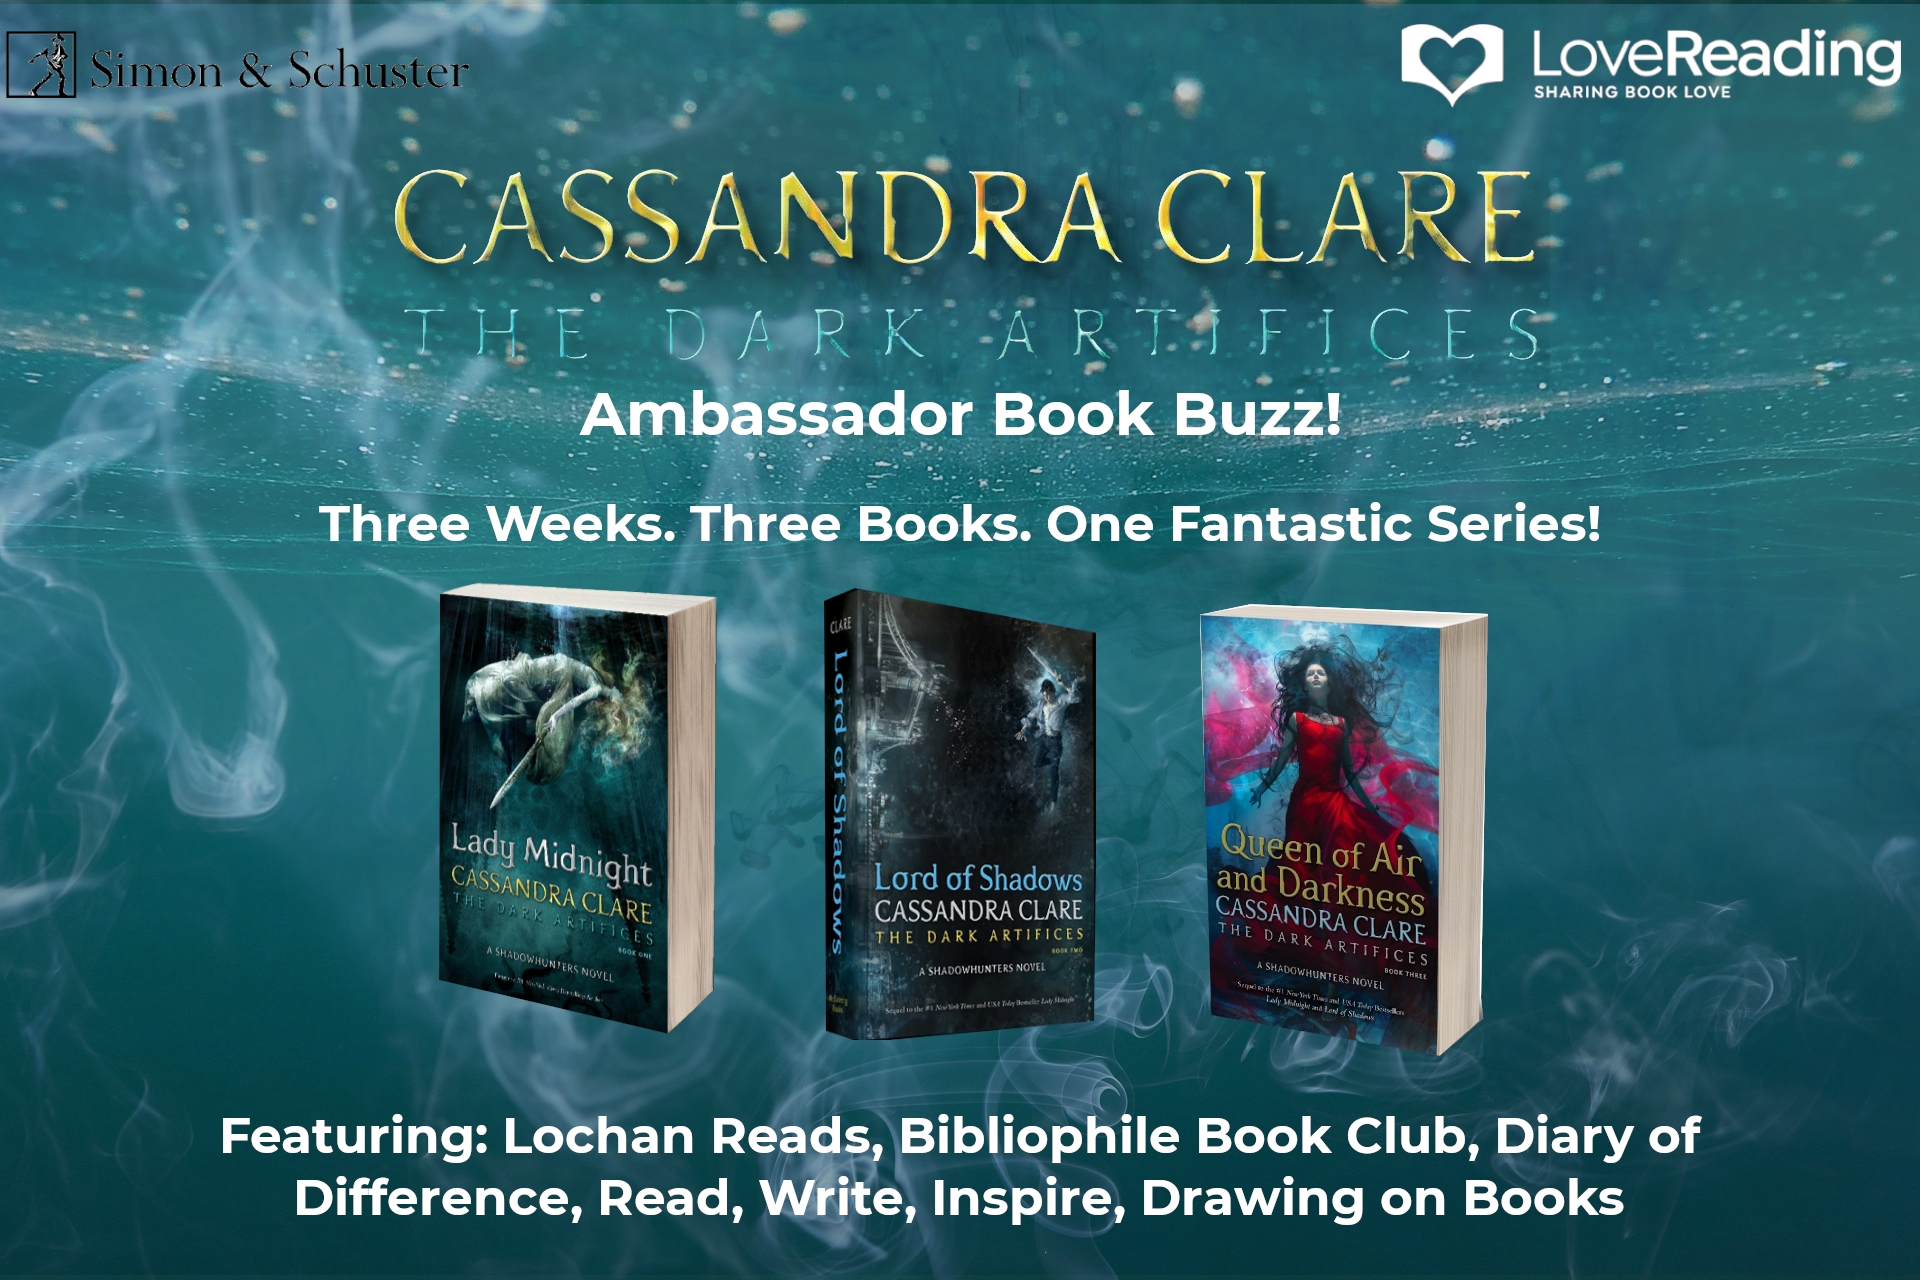 Ambassador Book Buzz: The Dark Artifices by Cassandra Clare